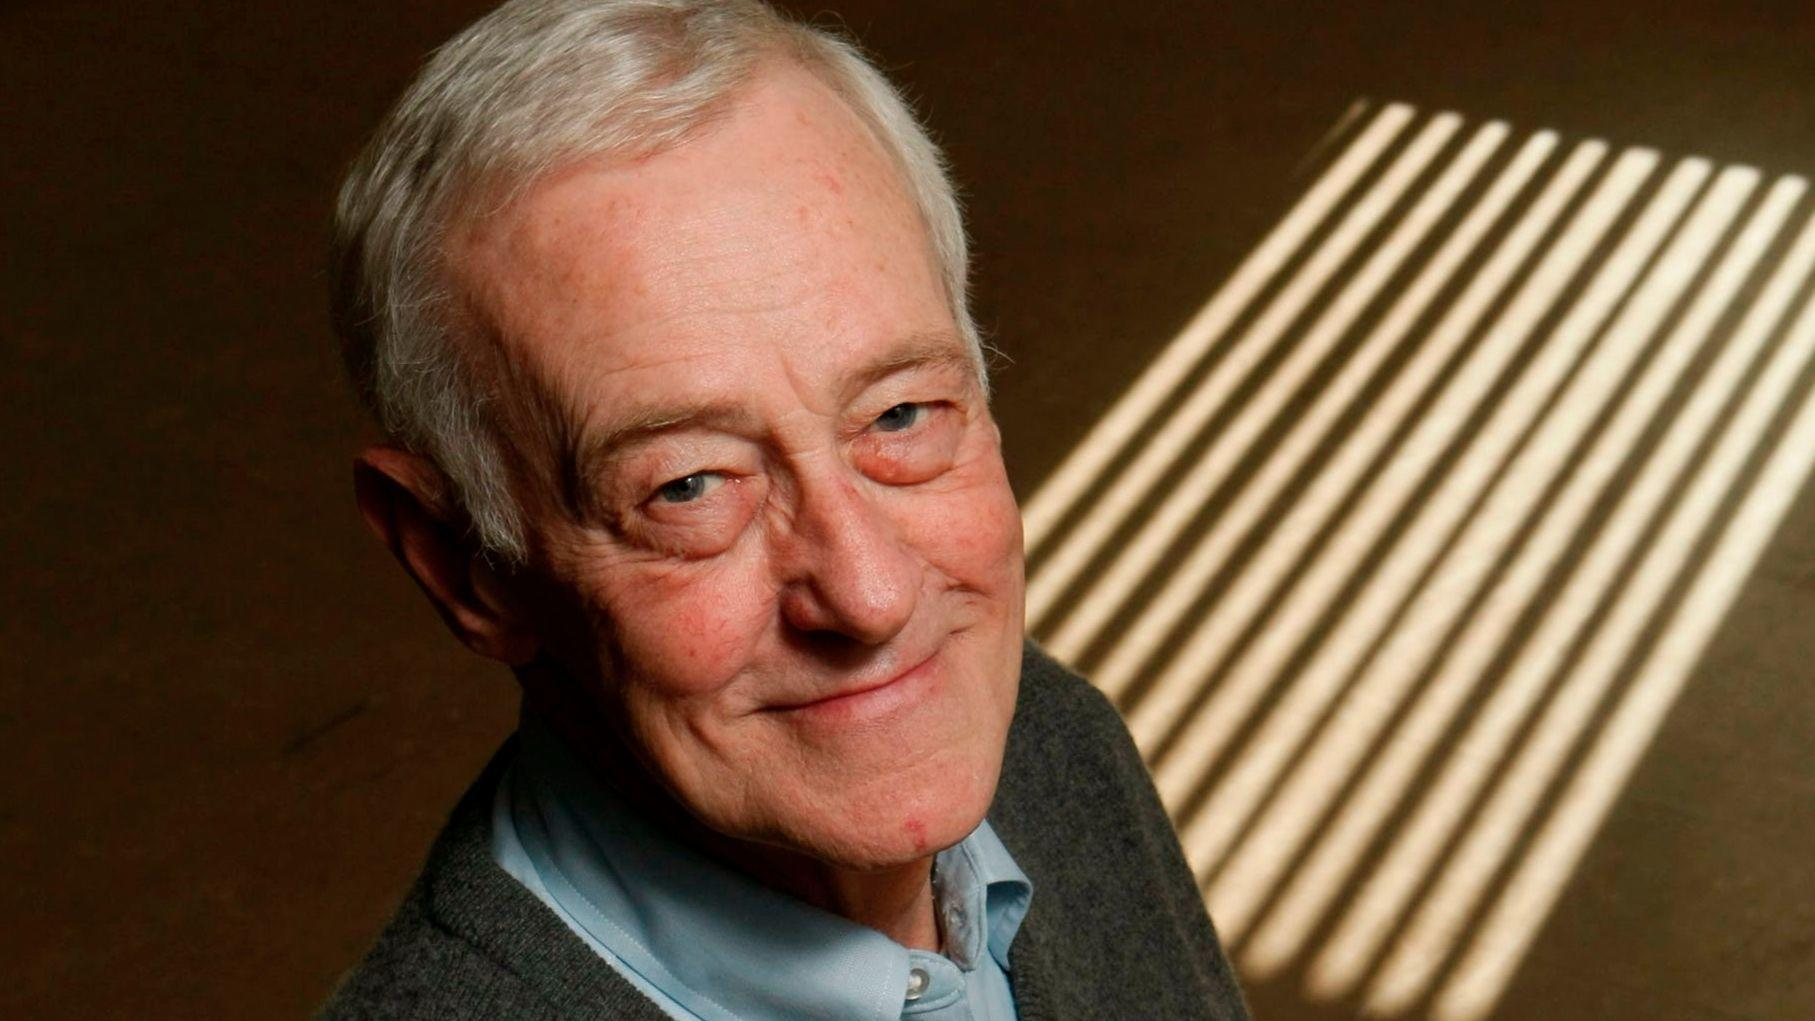 John Mahoney, Steppenwolf And 'Frasier' Actor Who Walked